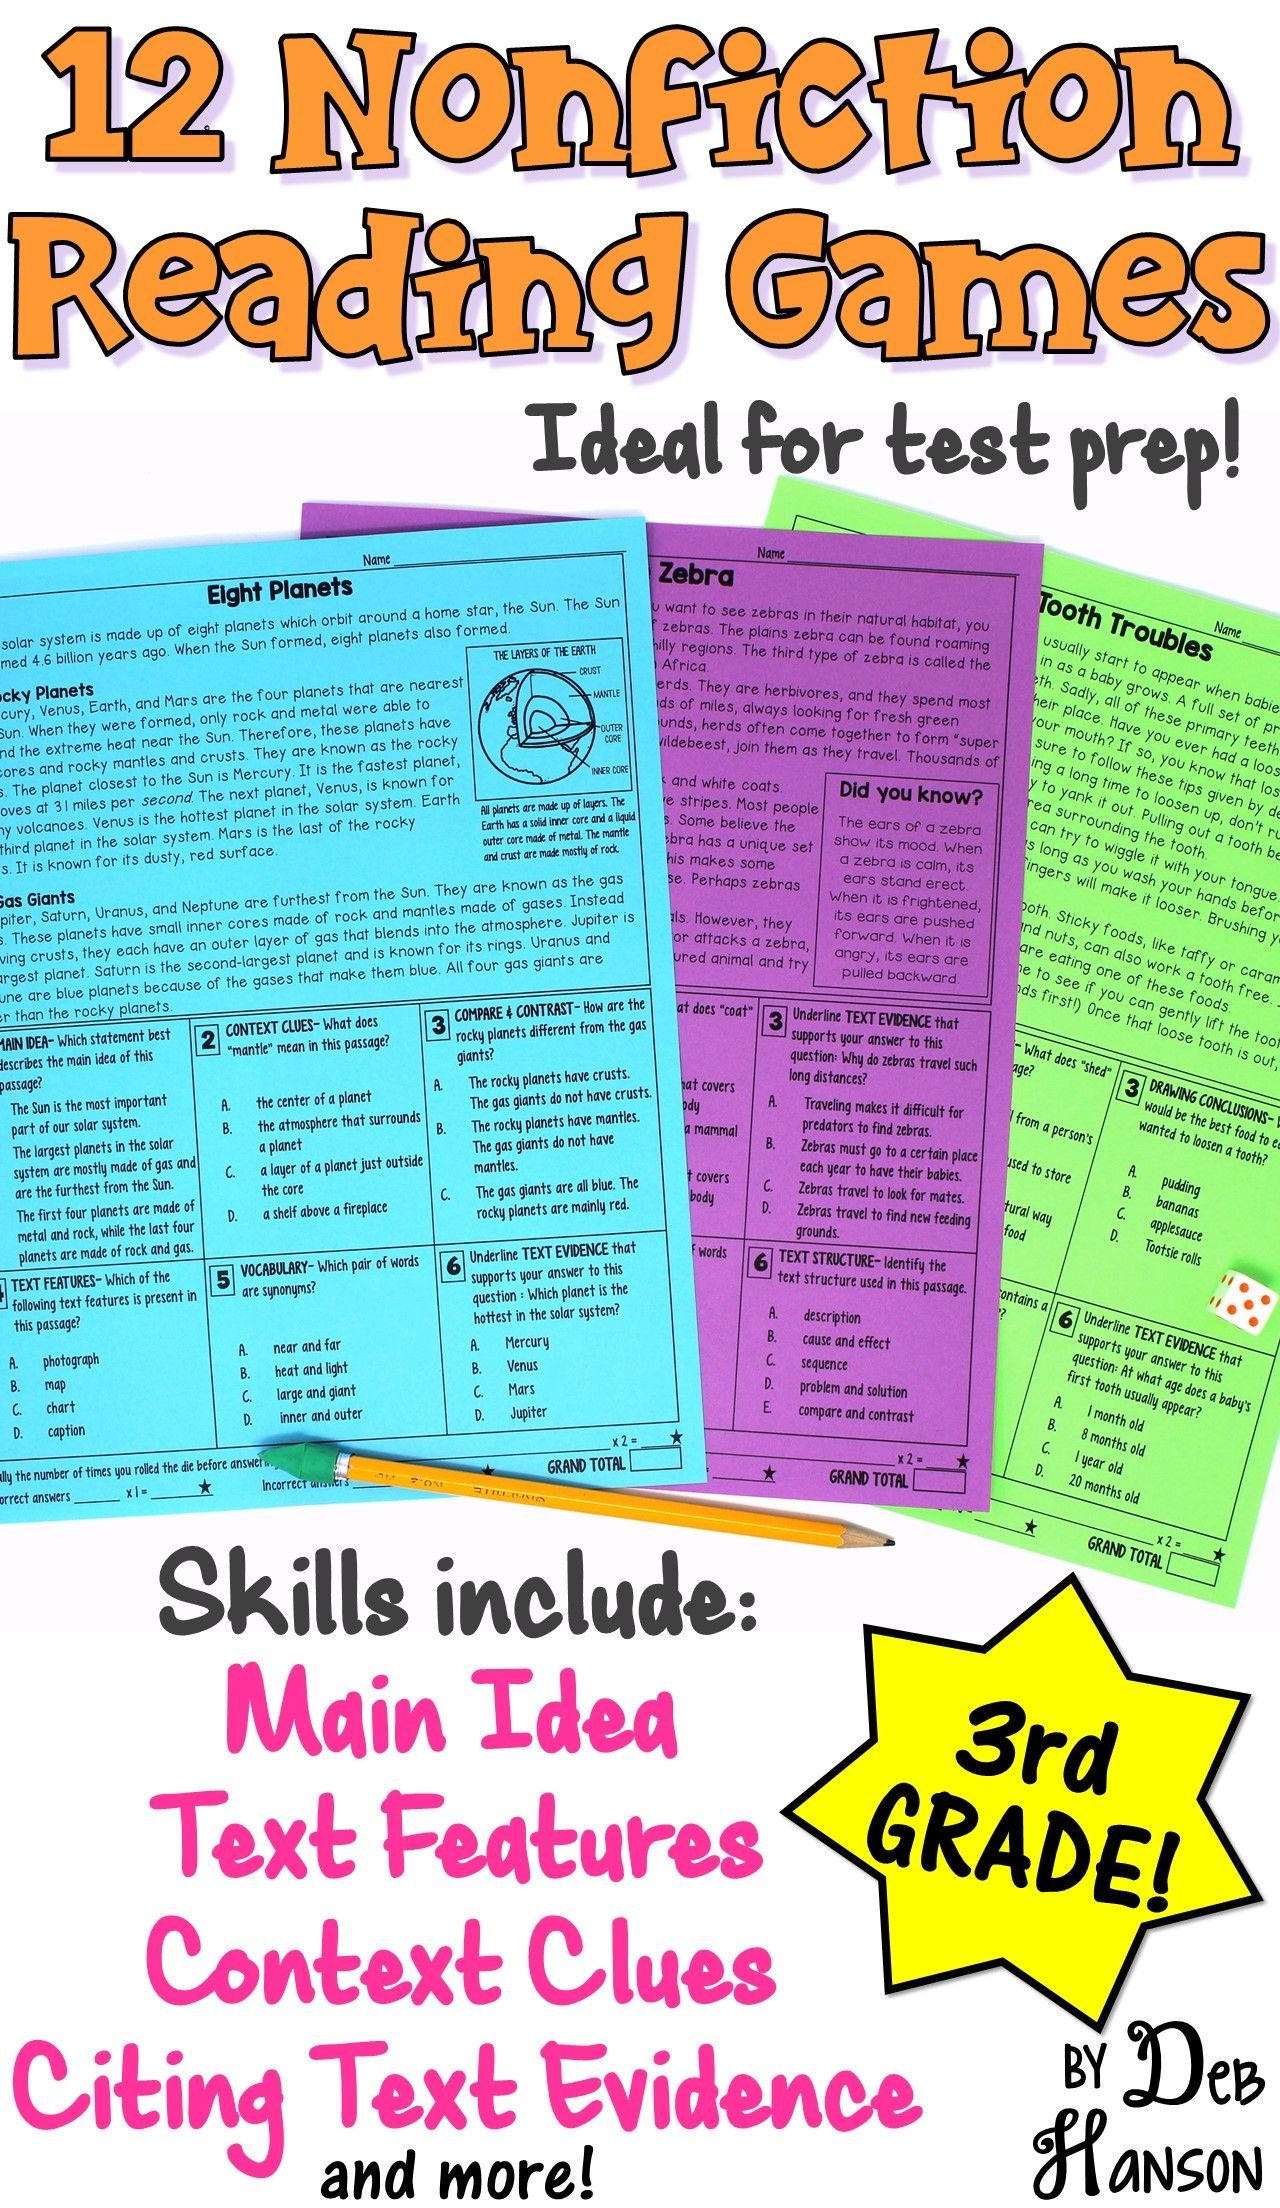 Reading Games For 3rd Grade 12 Nonfiction Passages